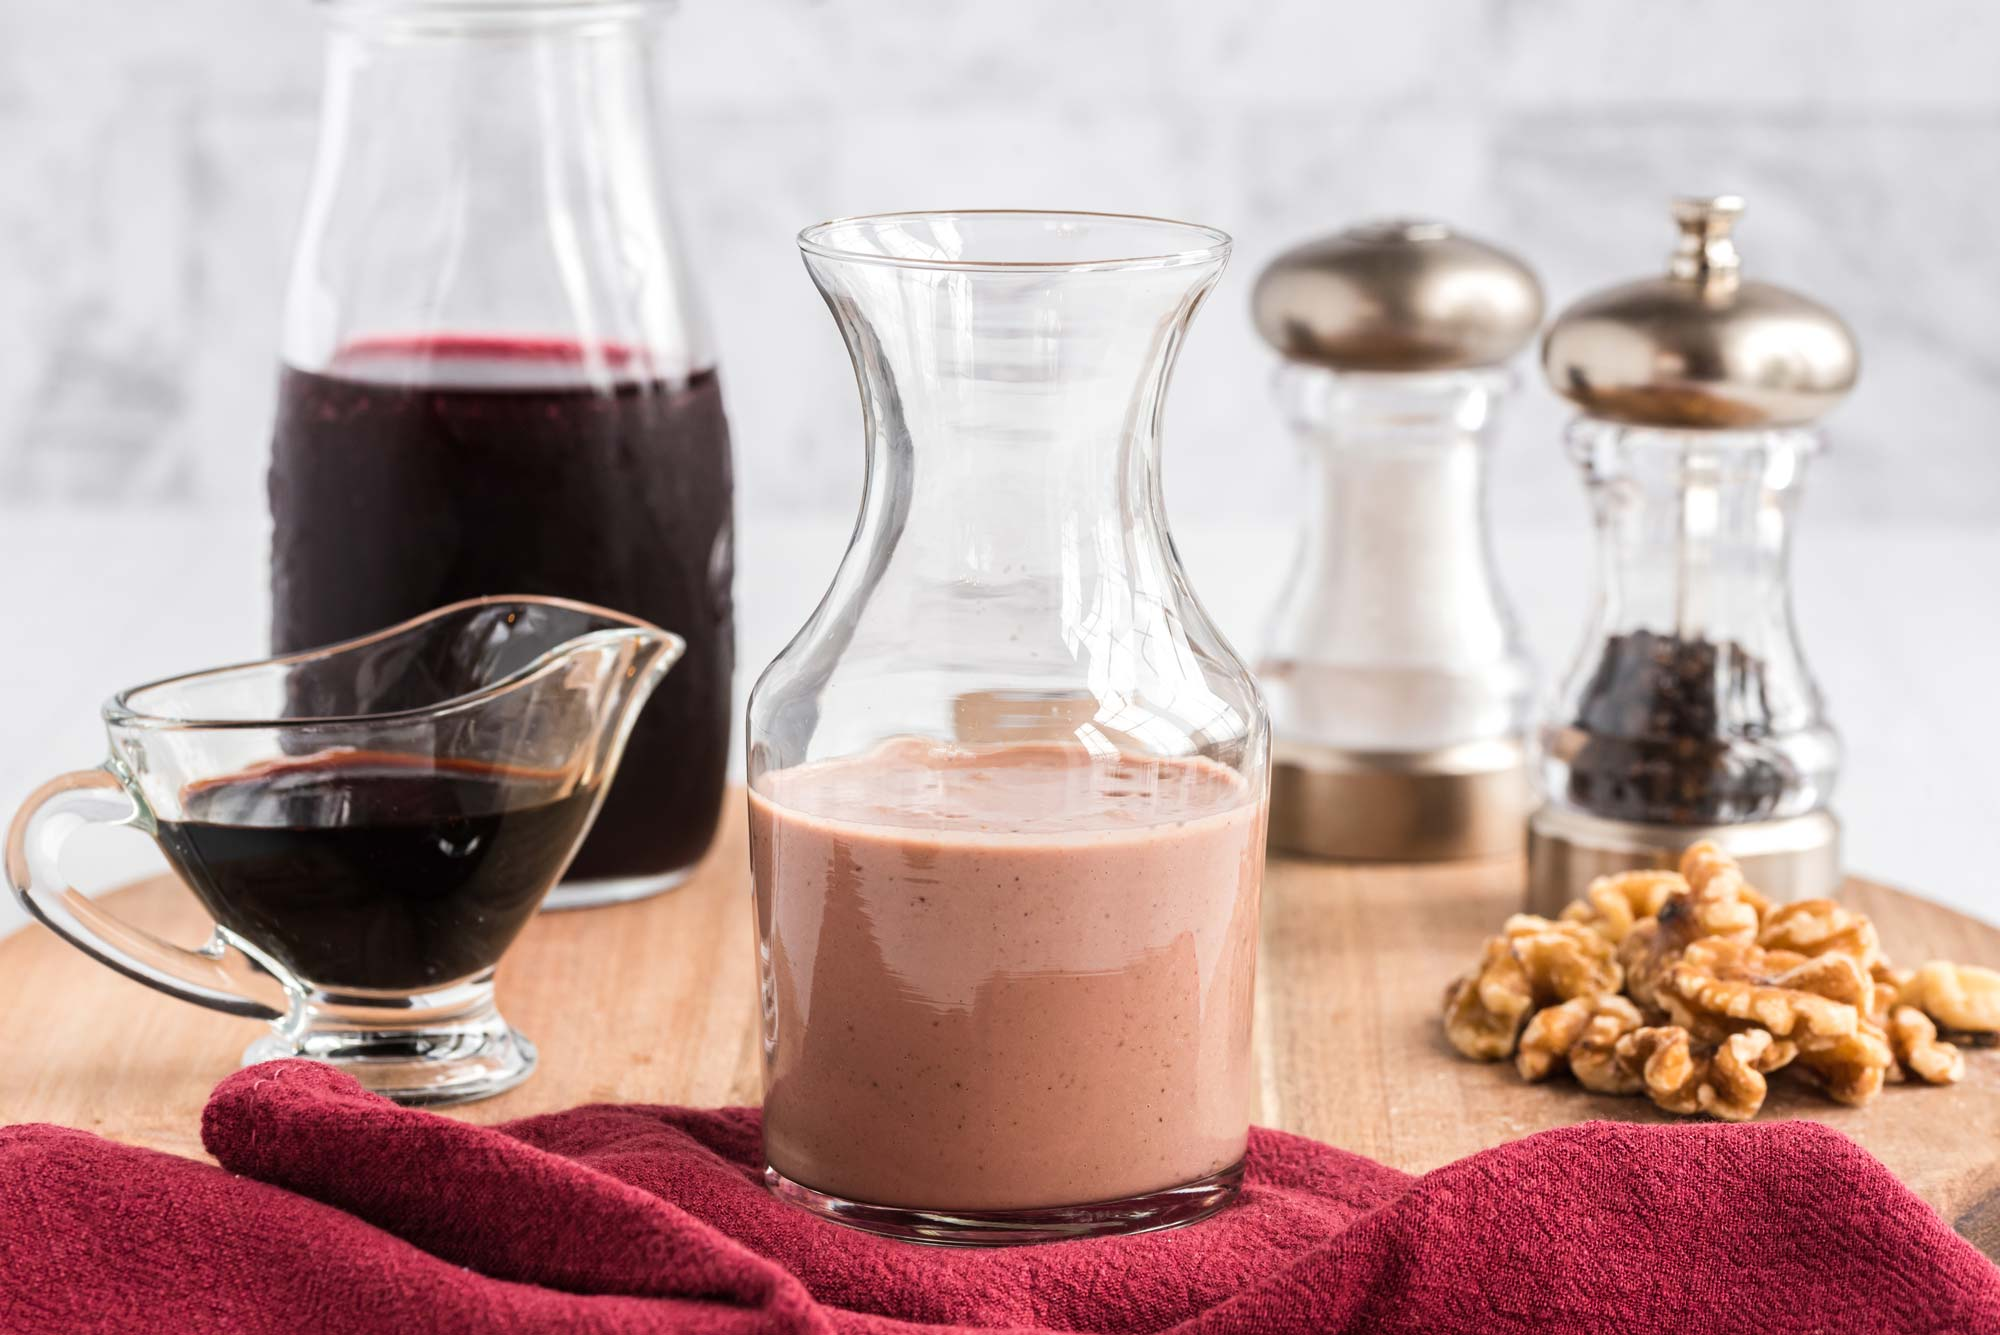 pomegranate balsamic dressing in carafe